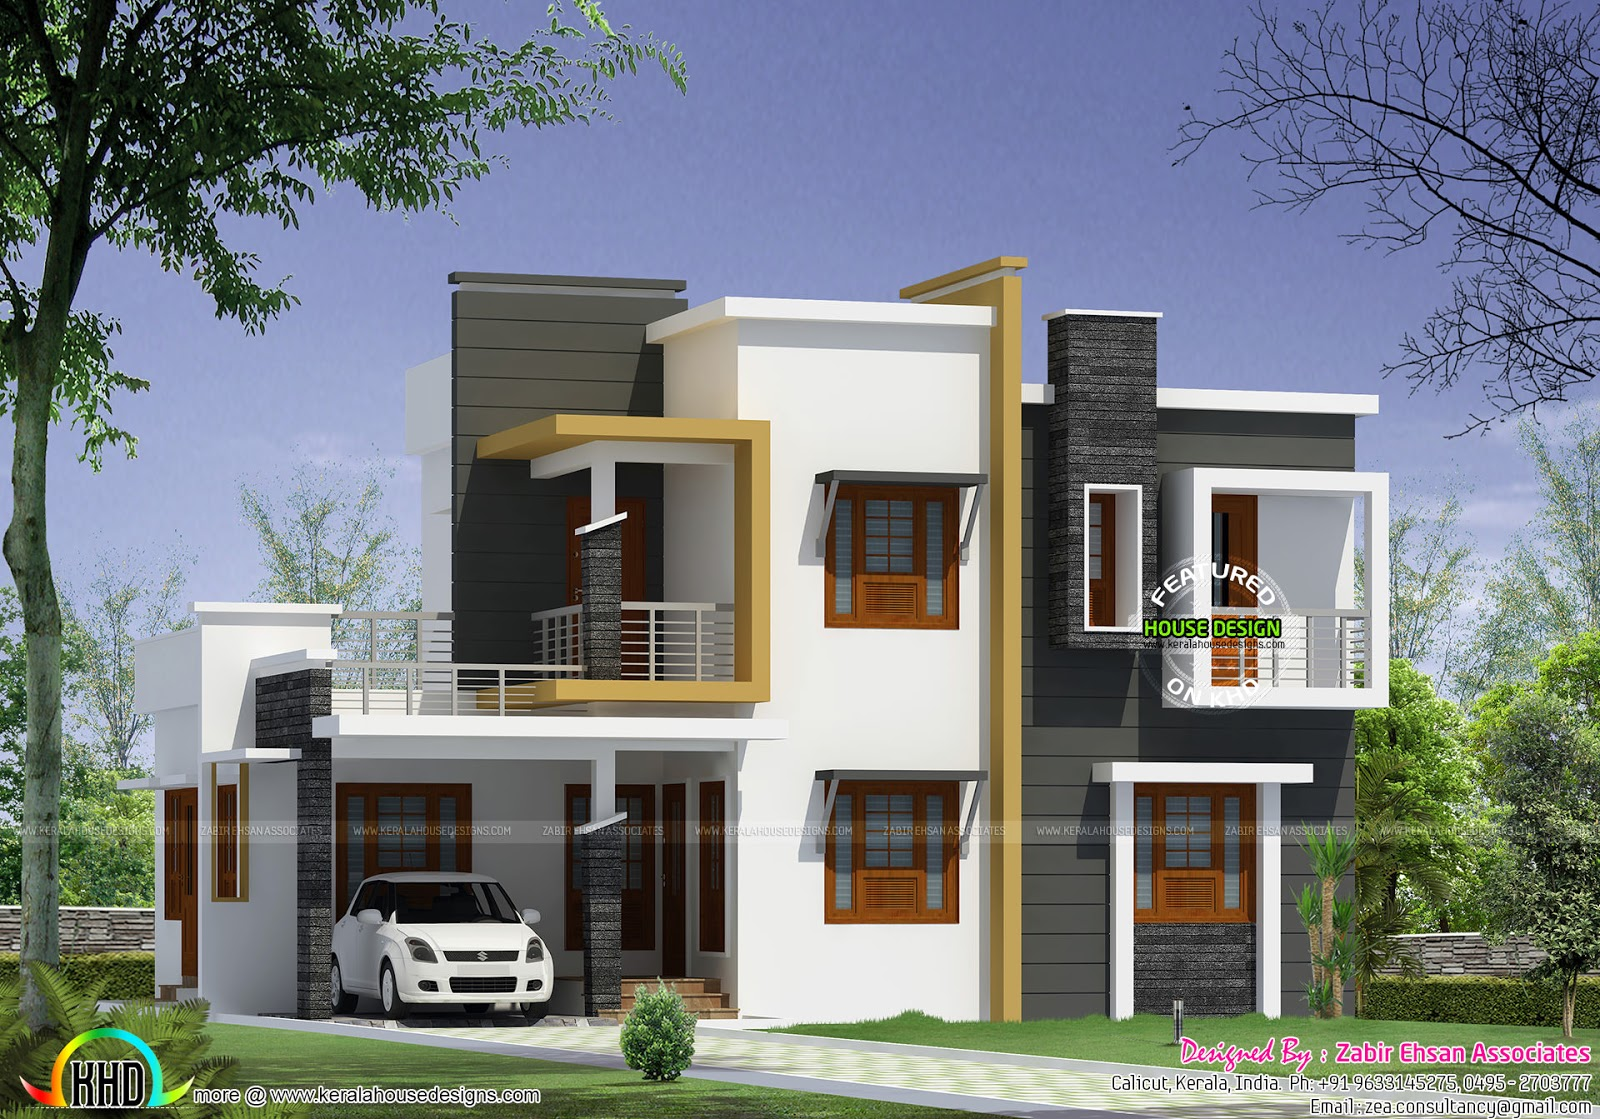 Box type modern house plan kerala home design and floor for Contemporary floor plans for new homes